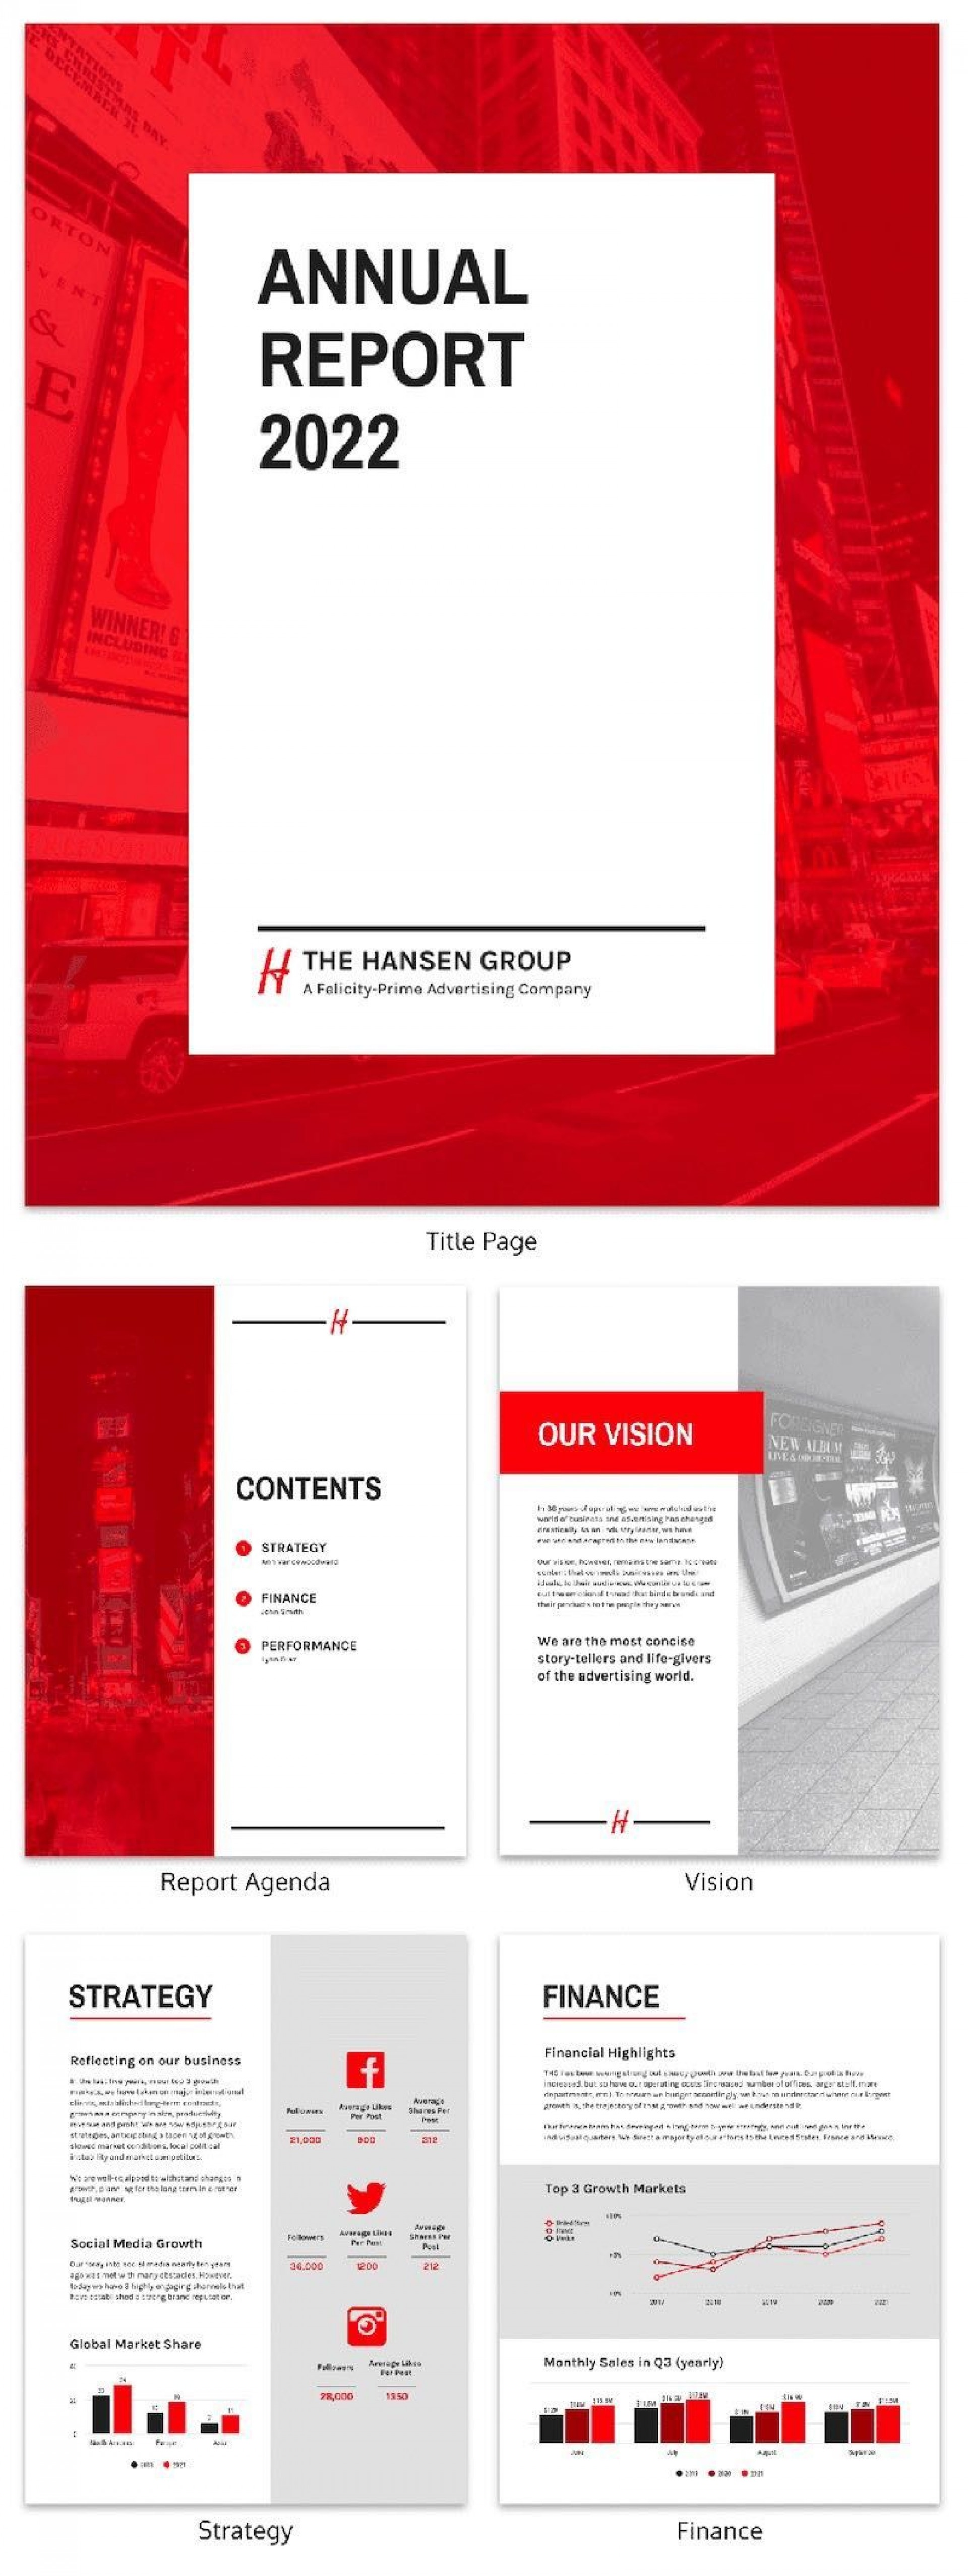 009 Amazing Annual Report Design Template High Def  Templates Word Timeles Free Download In1920